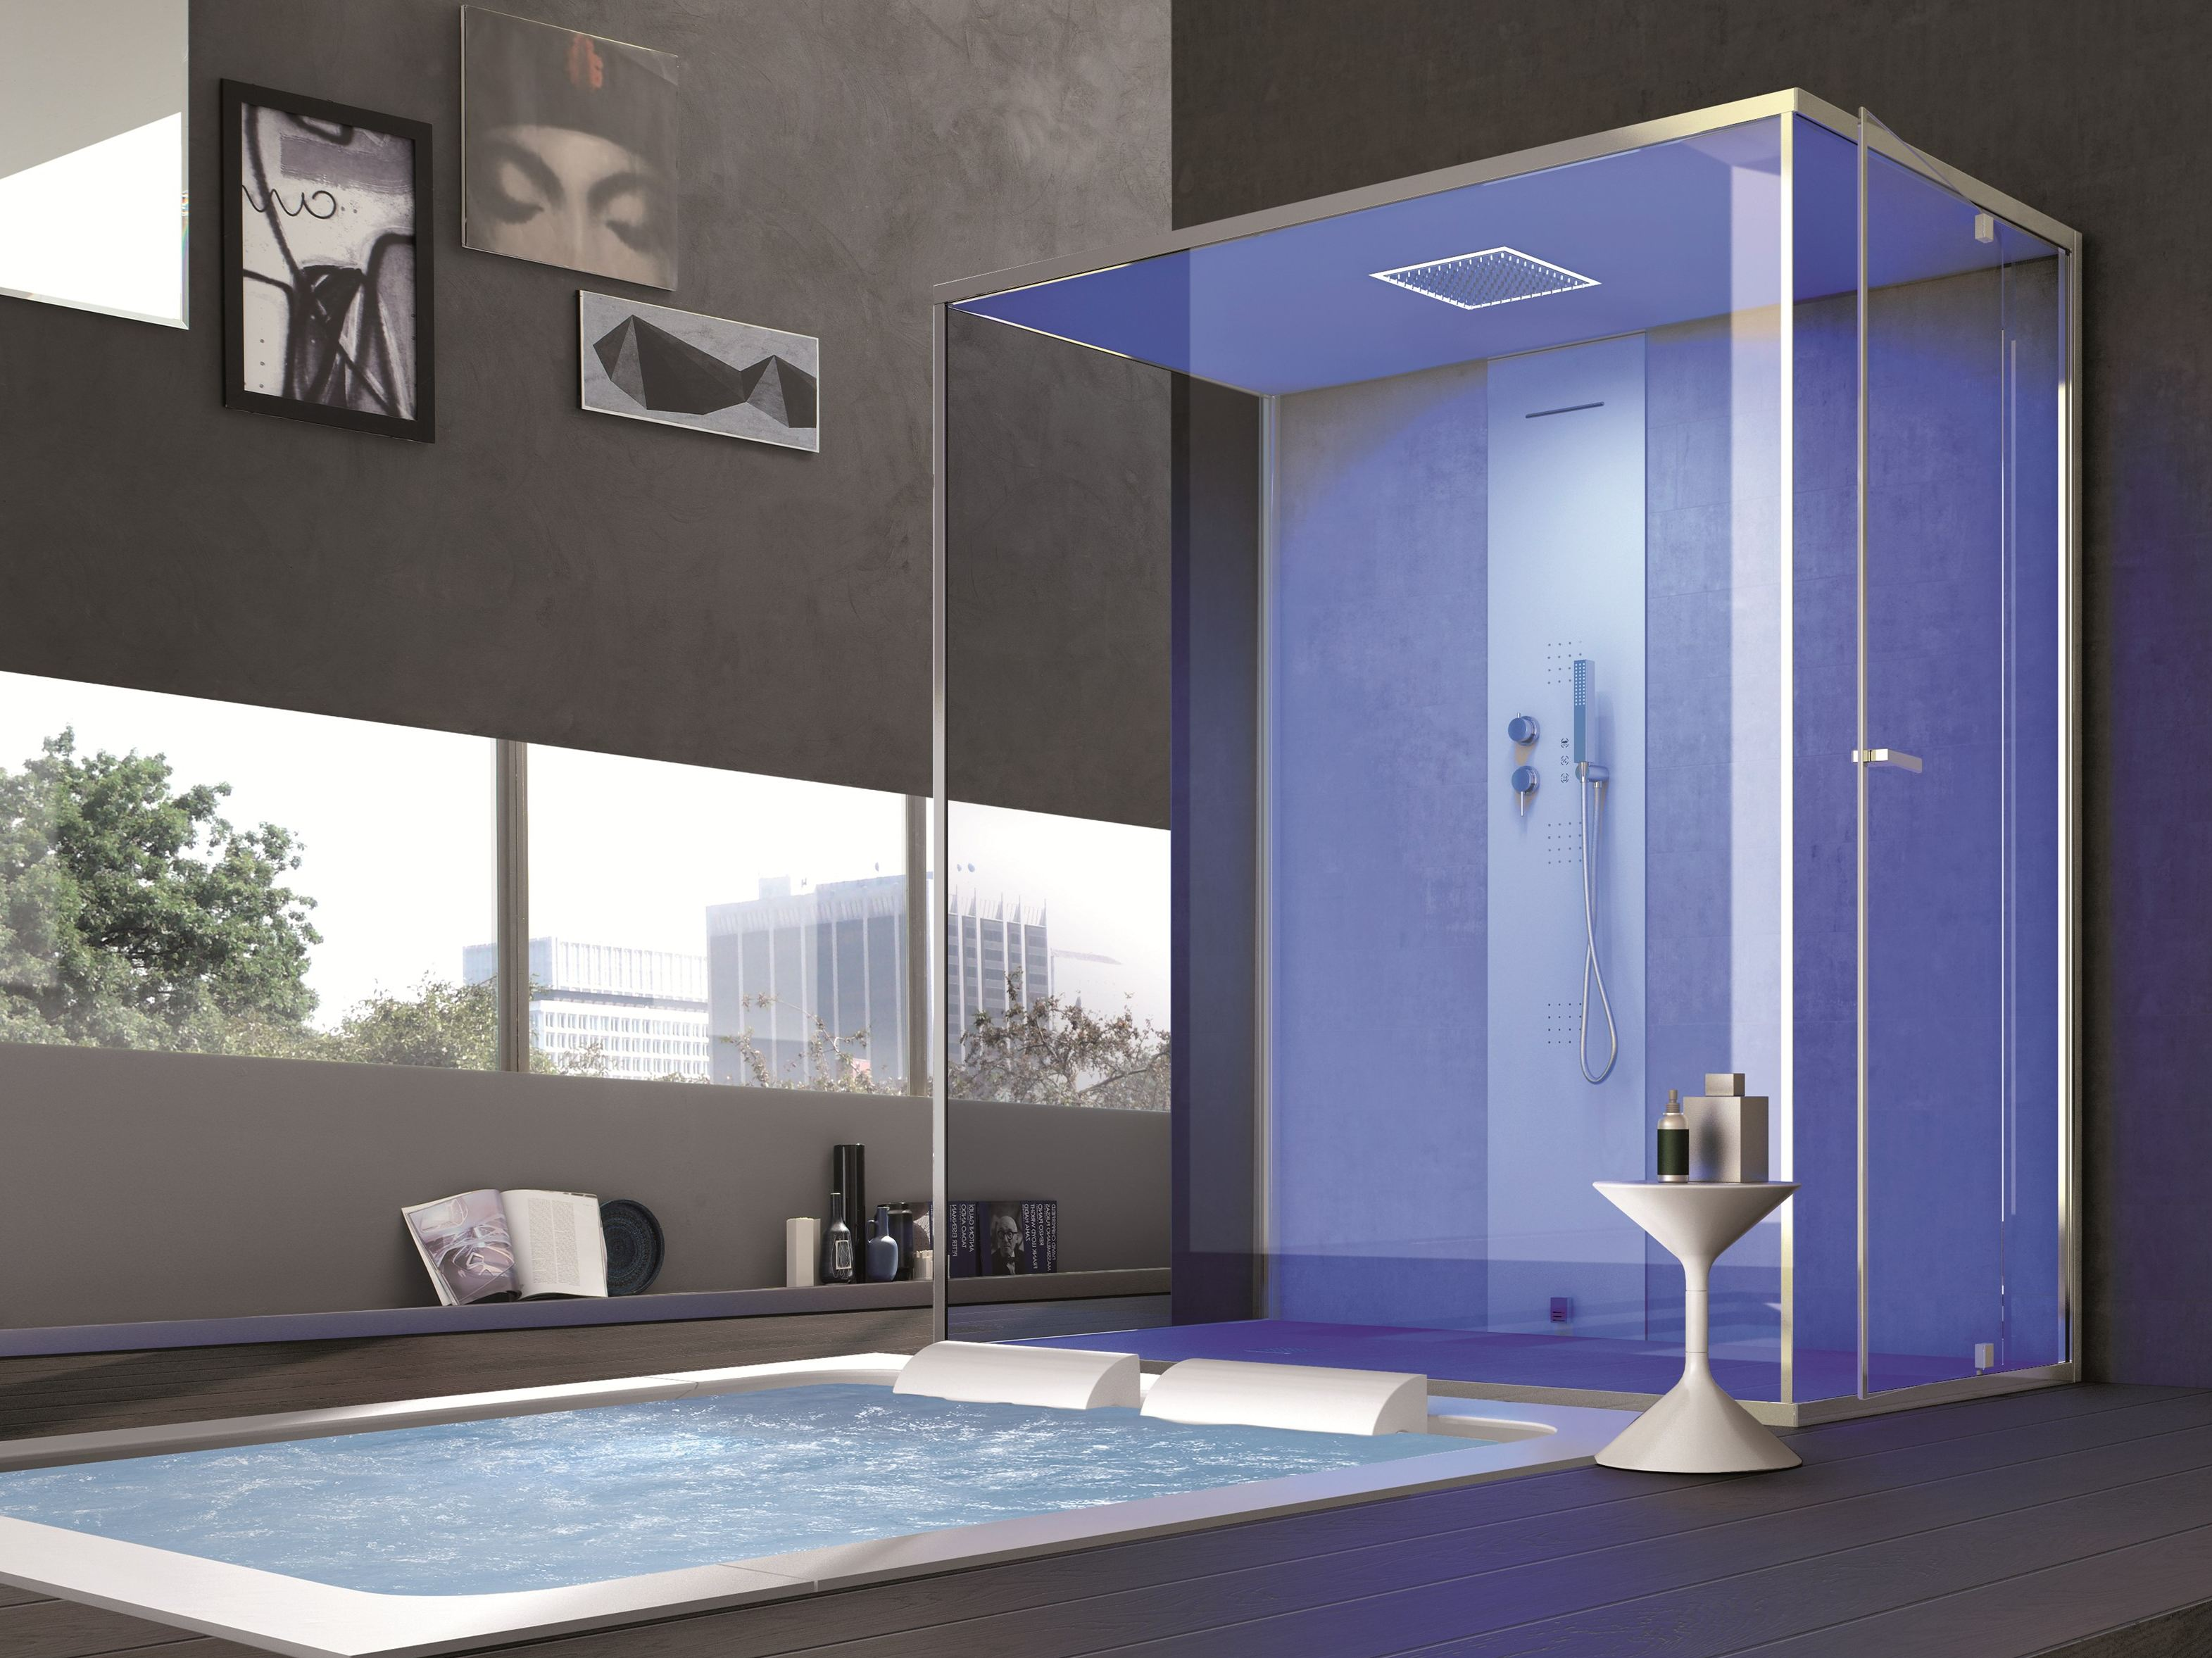 Turkish Bath For Chromotherapy Gemini By Hafro Design